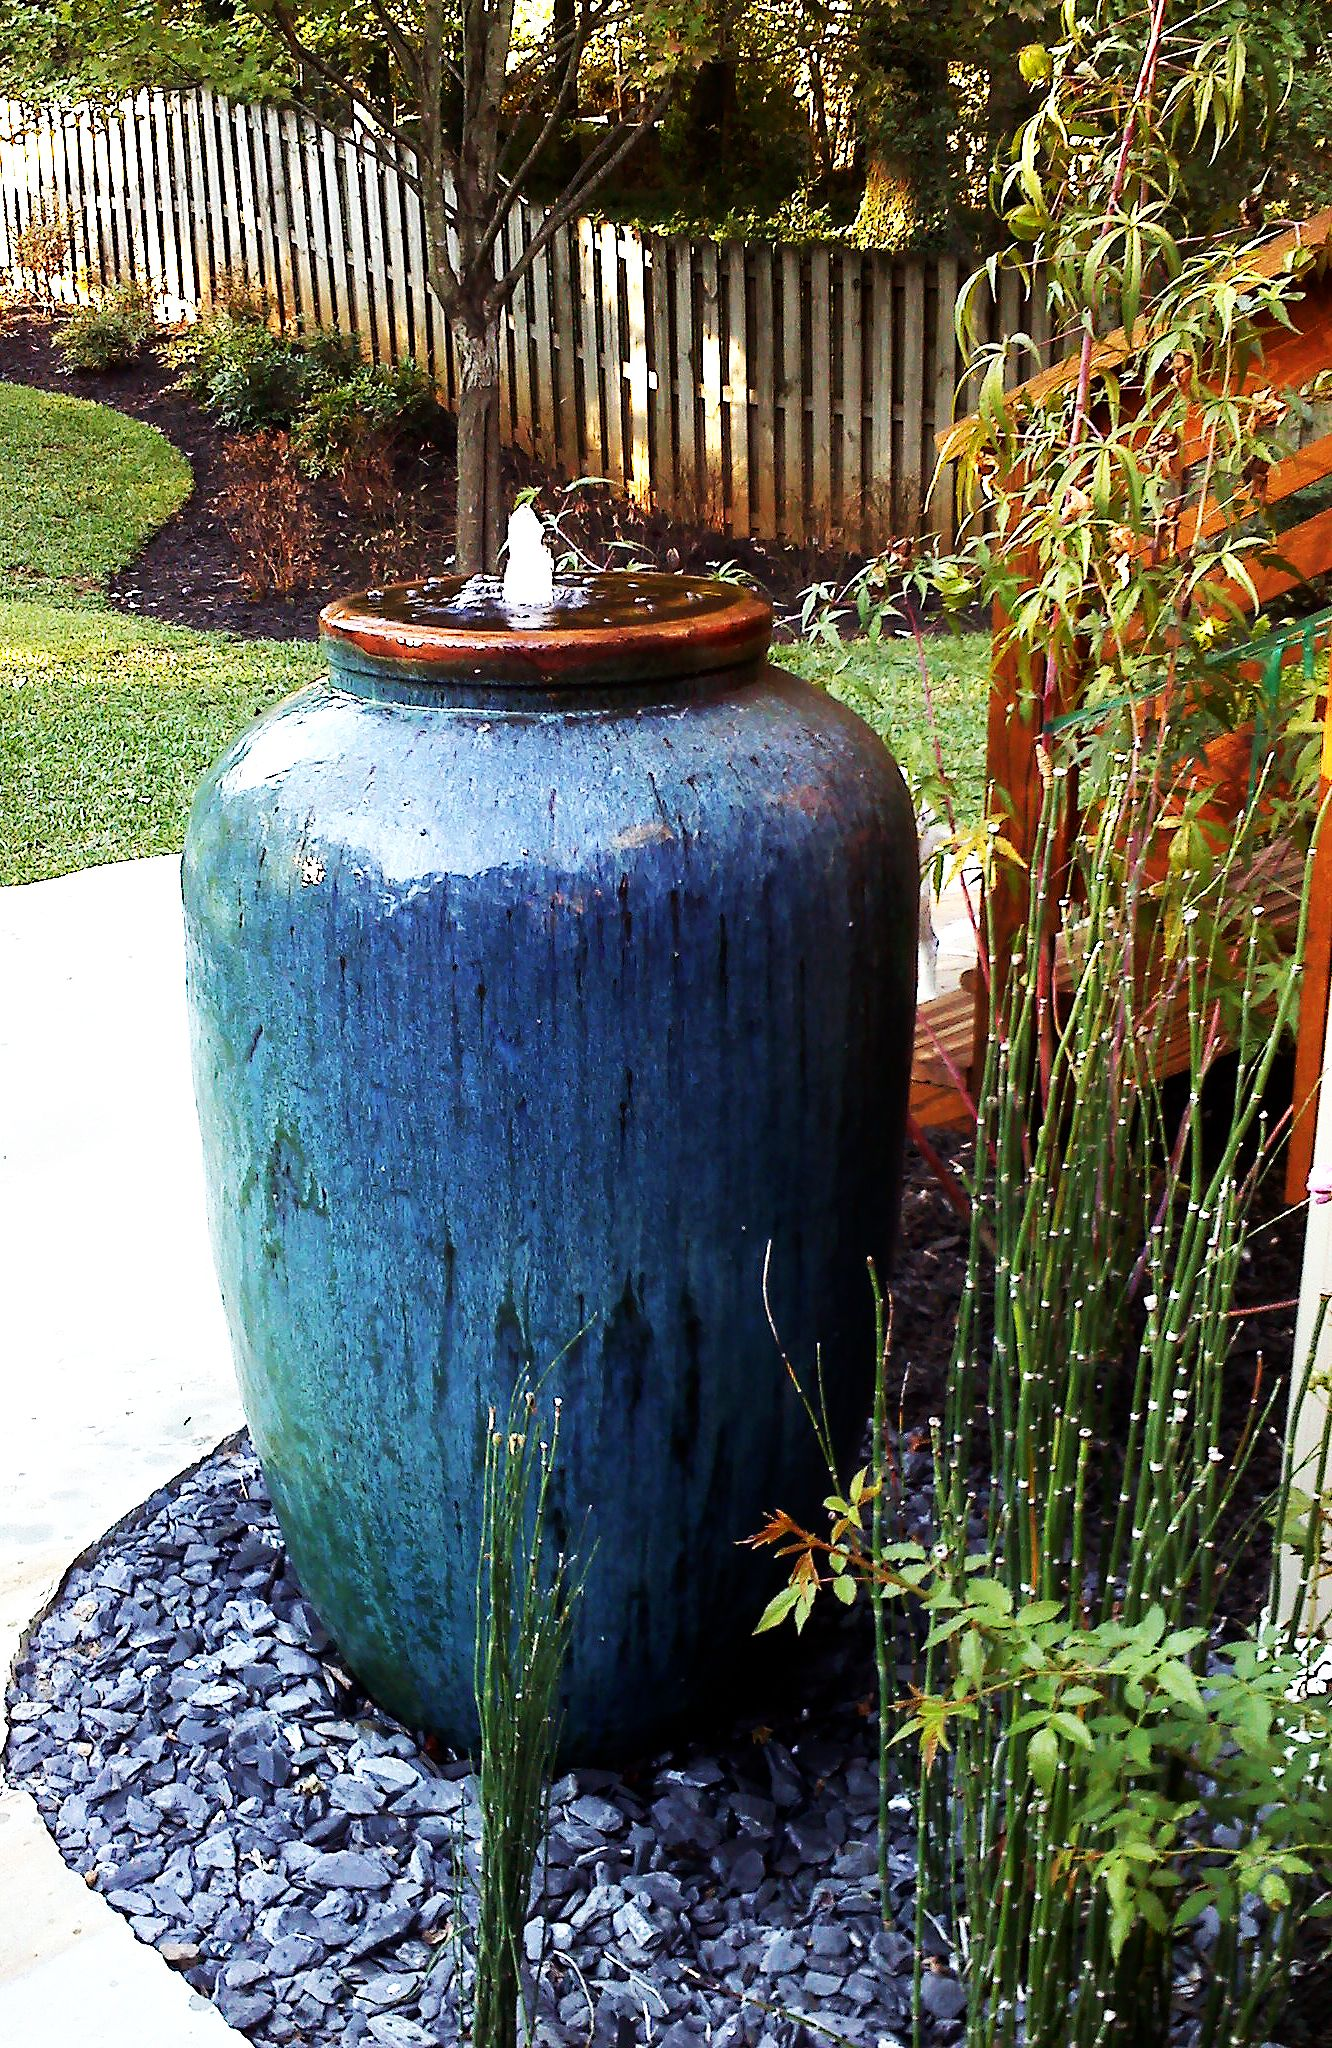 blue thumb fountains on where you can find the most awsome pots water fountains outdoor garden water fountains backyard water fountains pinterest